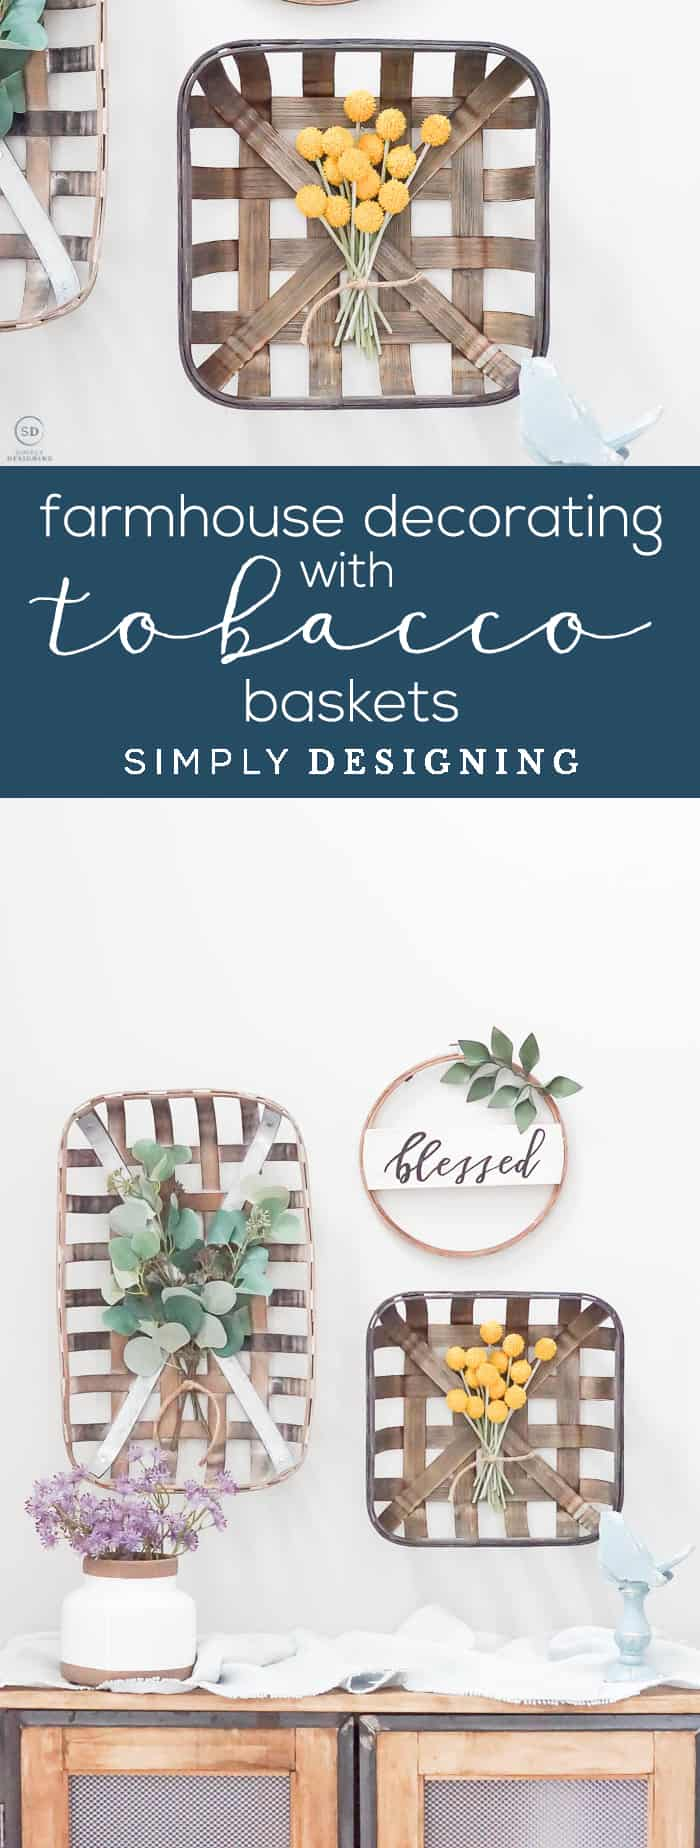 Farmhouse Decorating with Tobacco Baskets - decorate your entryway with these beautiful tobacco baskets